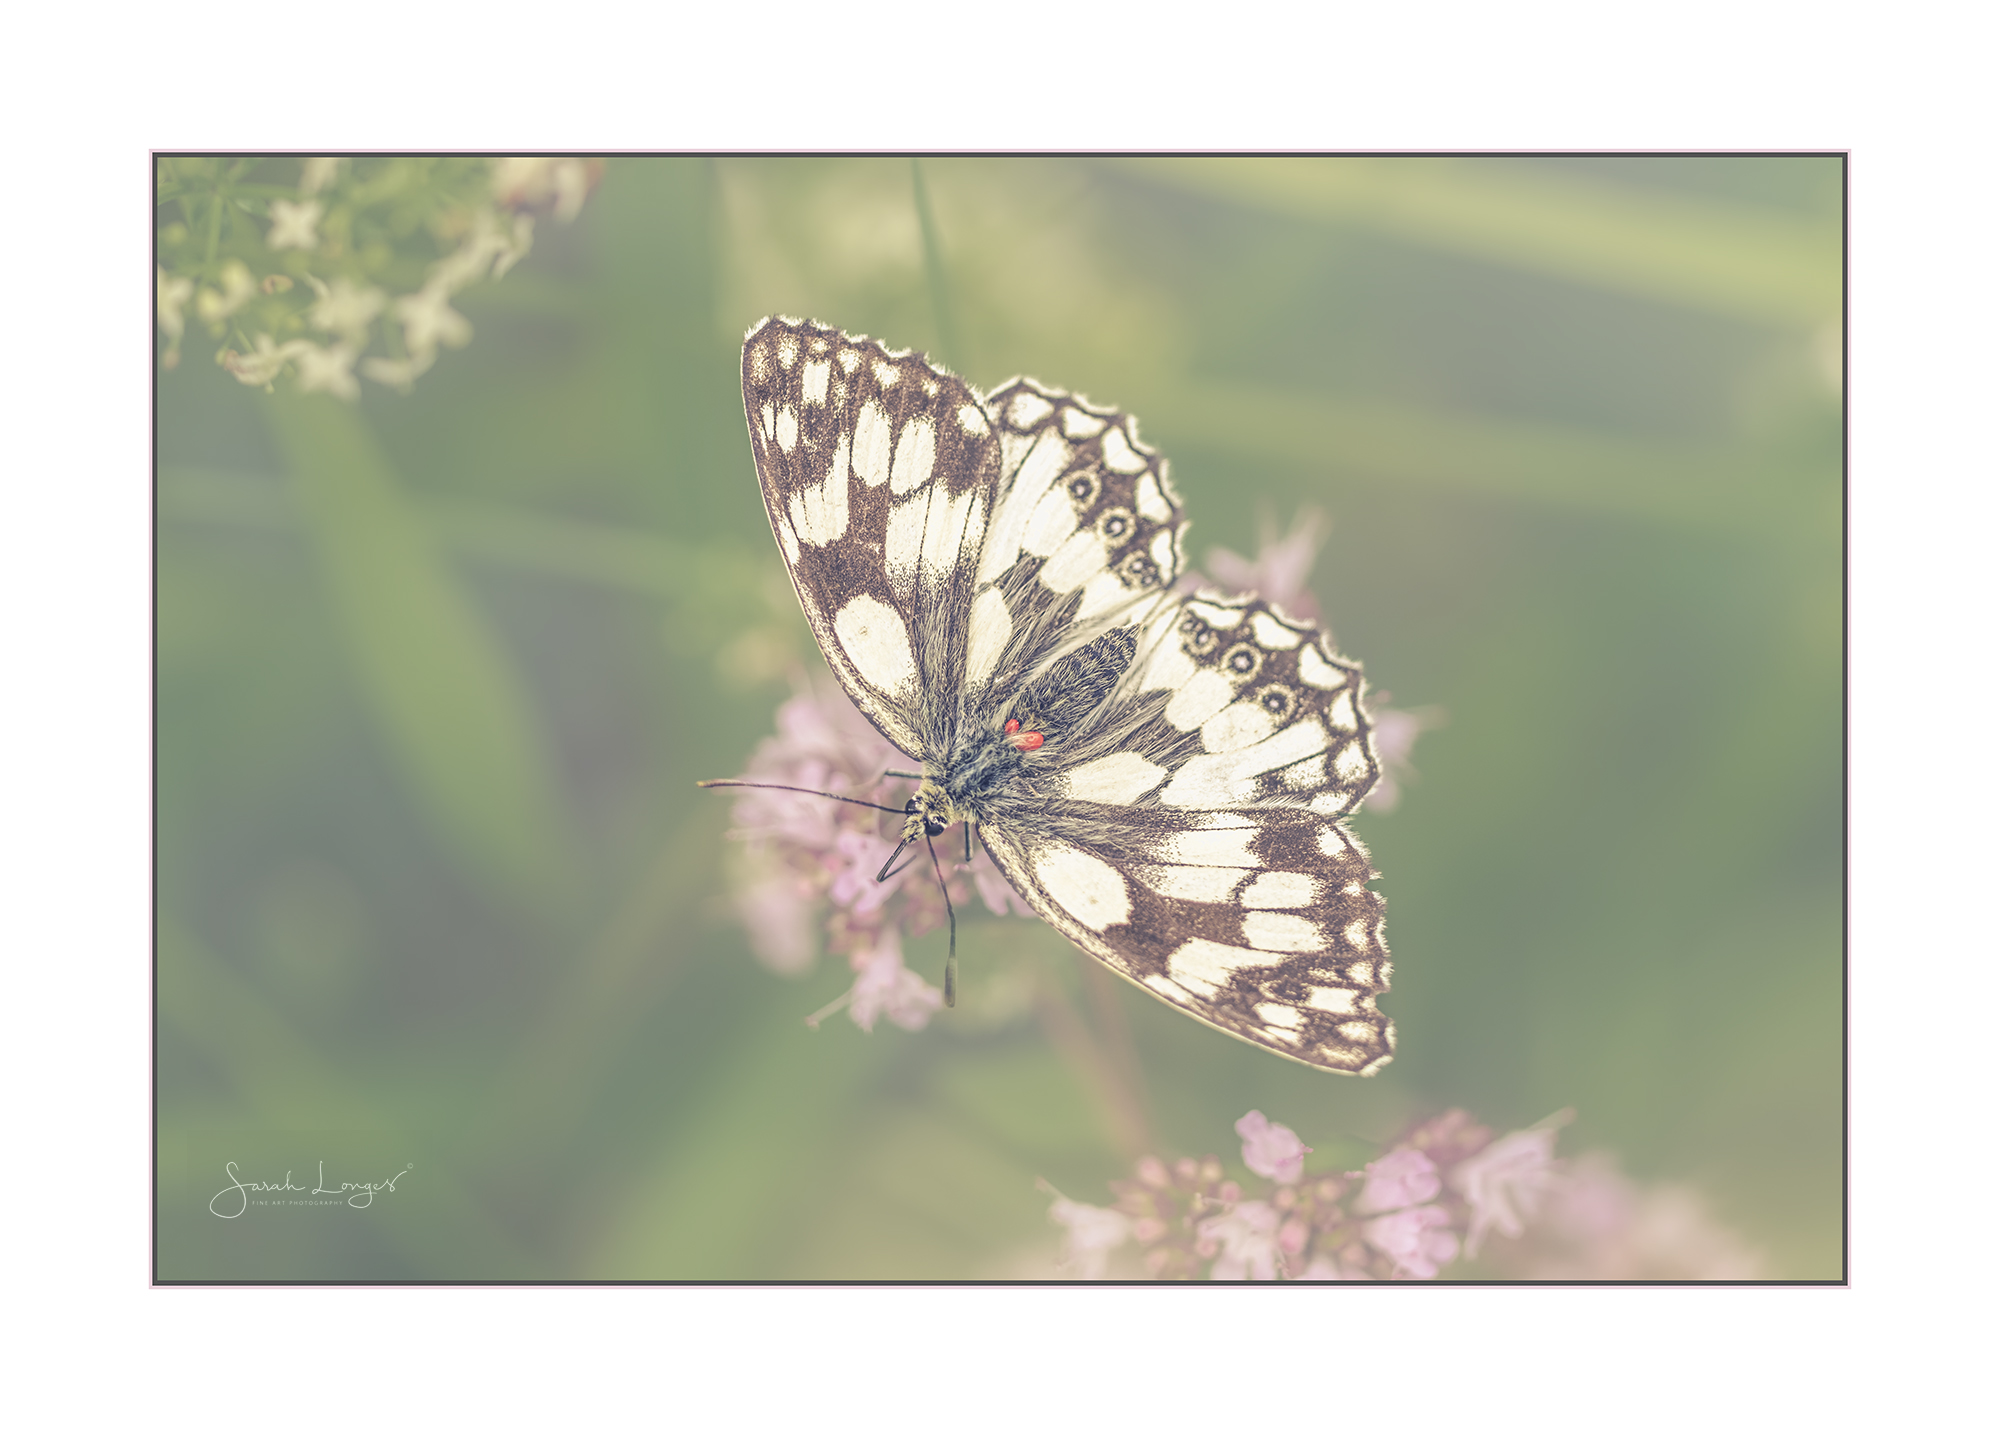 Marbled White showing mites on body